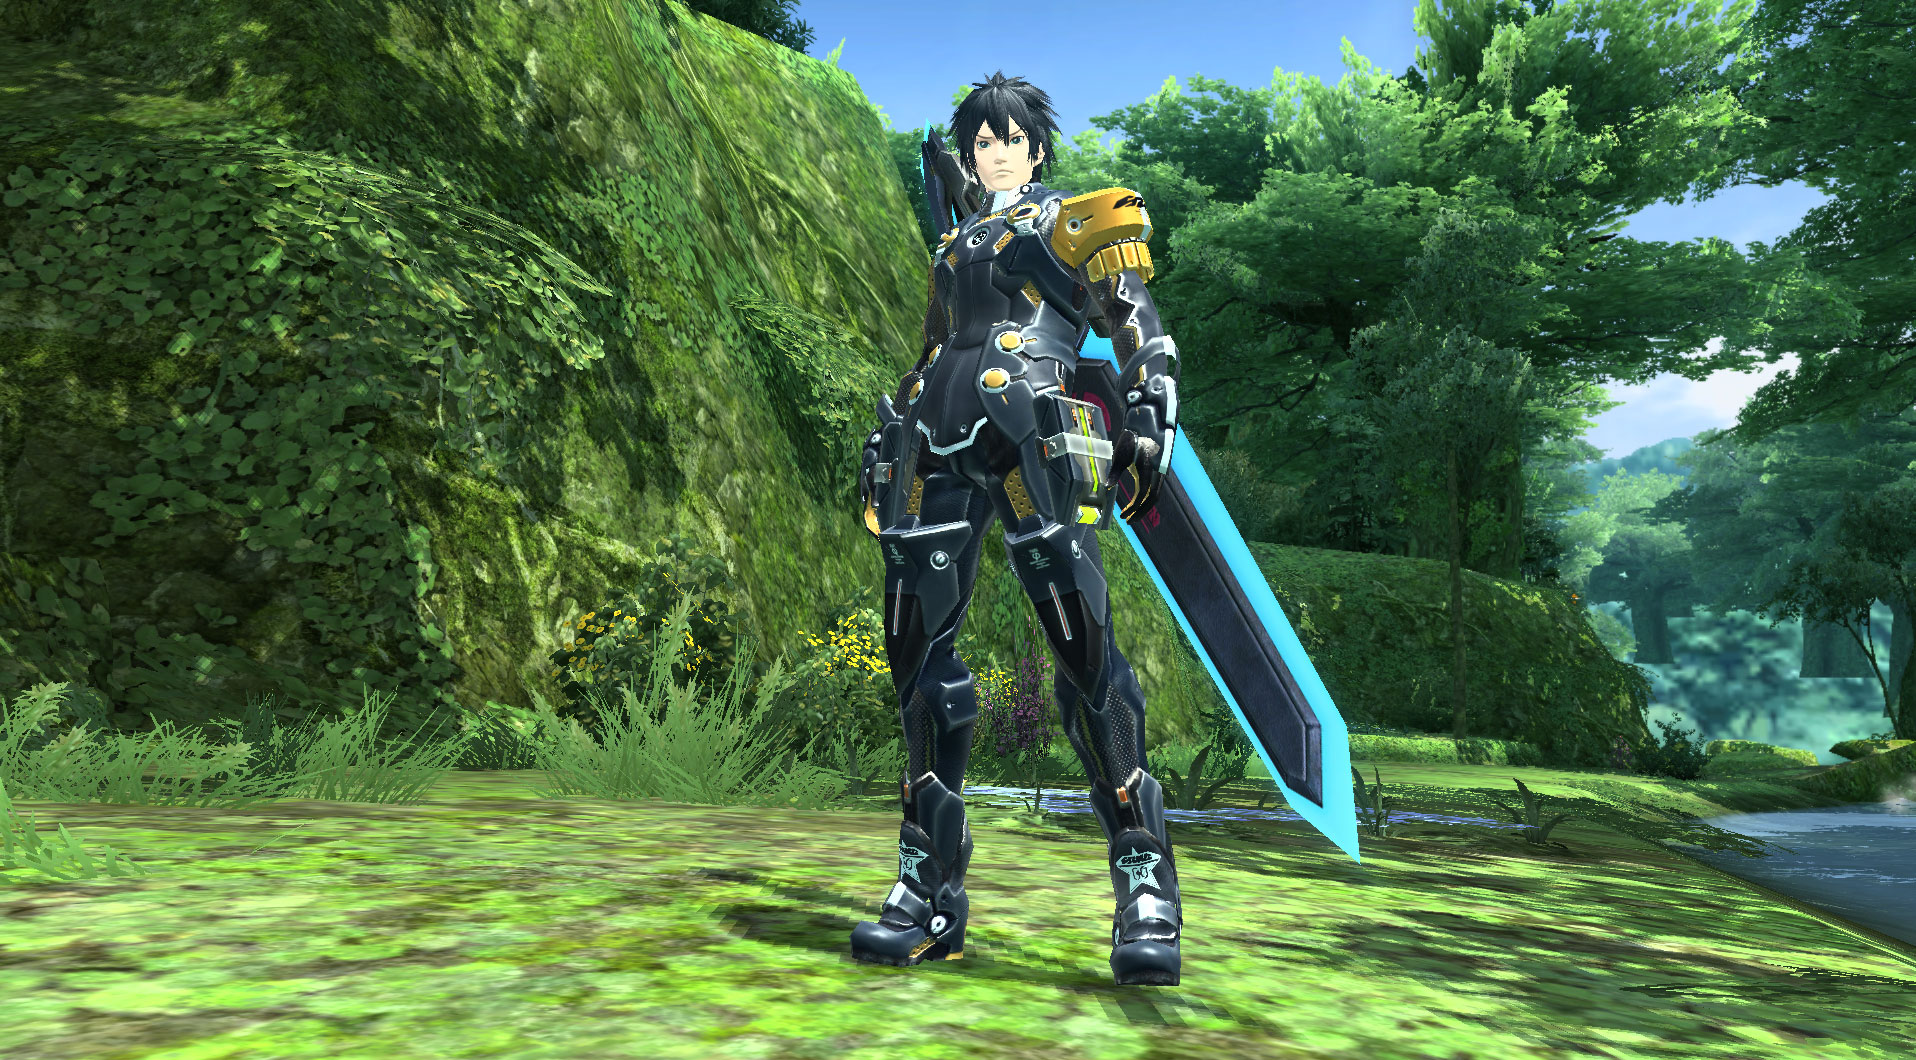 Phantasy star online 2 review and download.